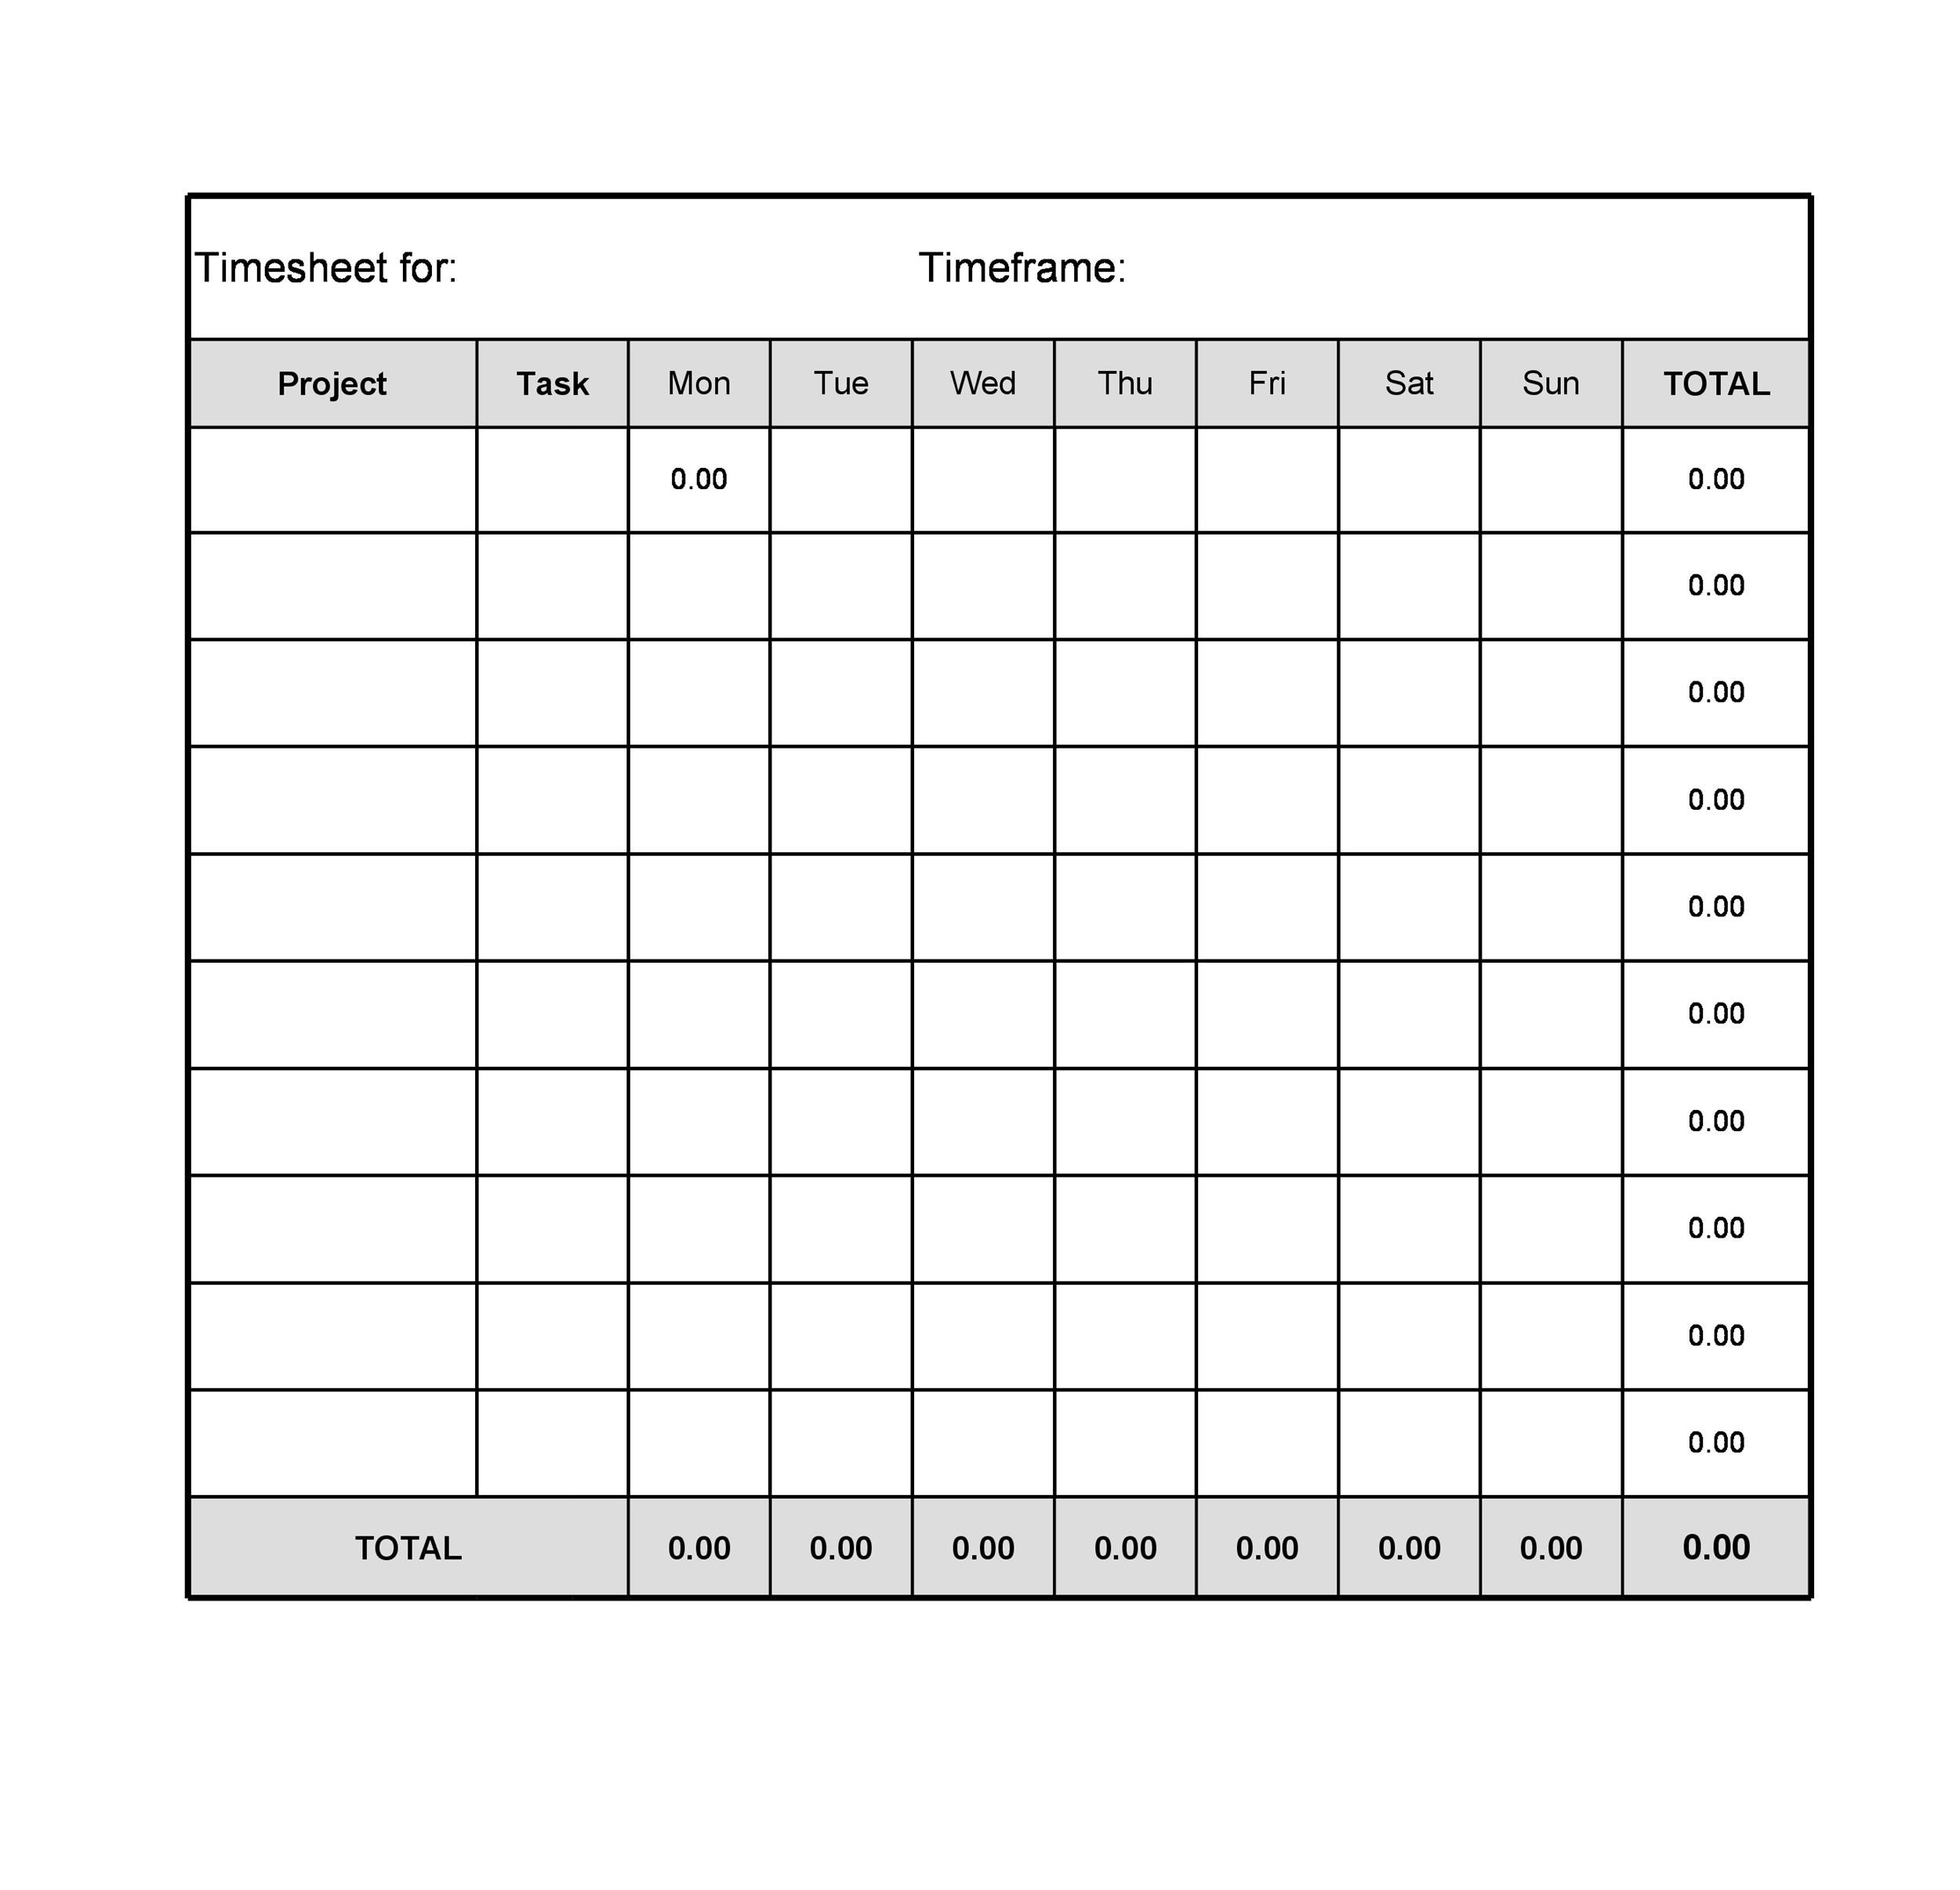 Time Sheet Template A Simple Timesheet Template Featuring The